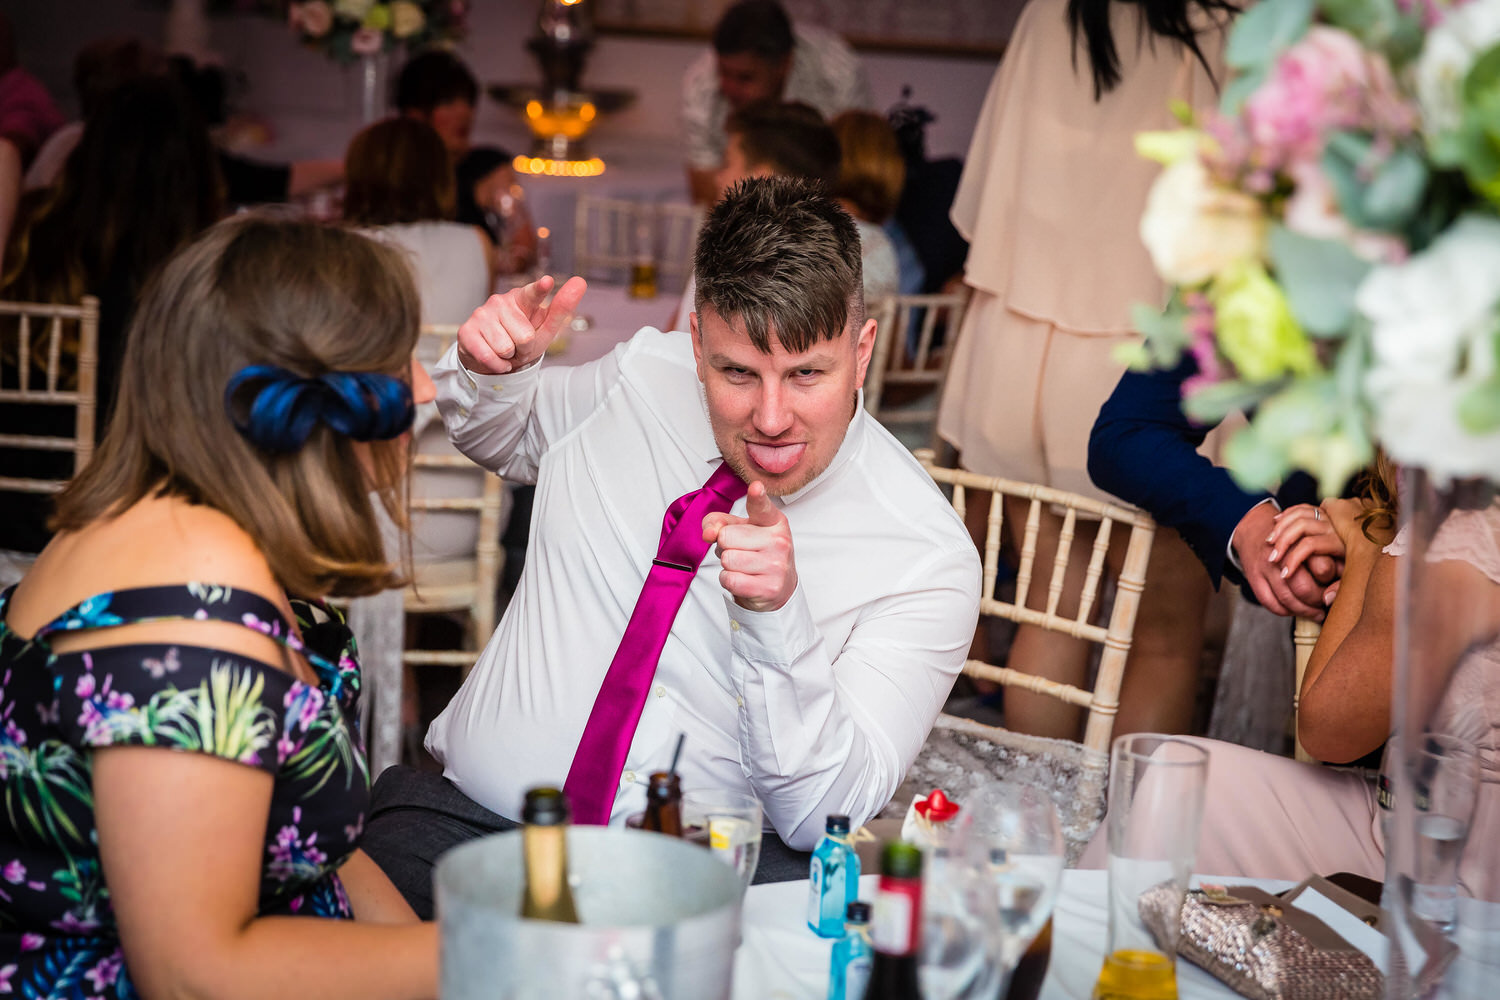 wedding guest at party pointing at camera